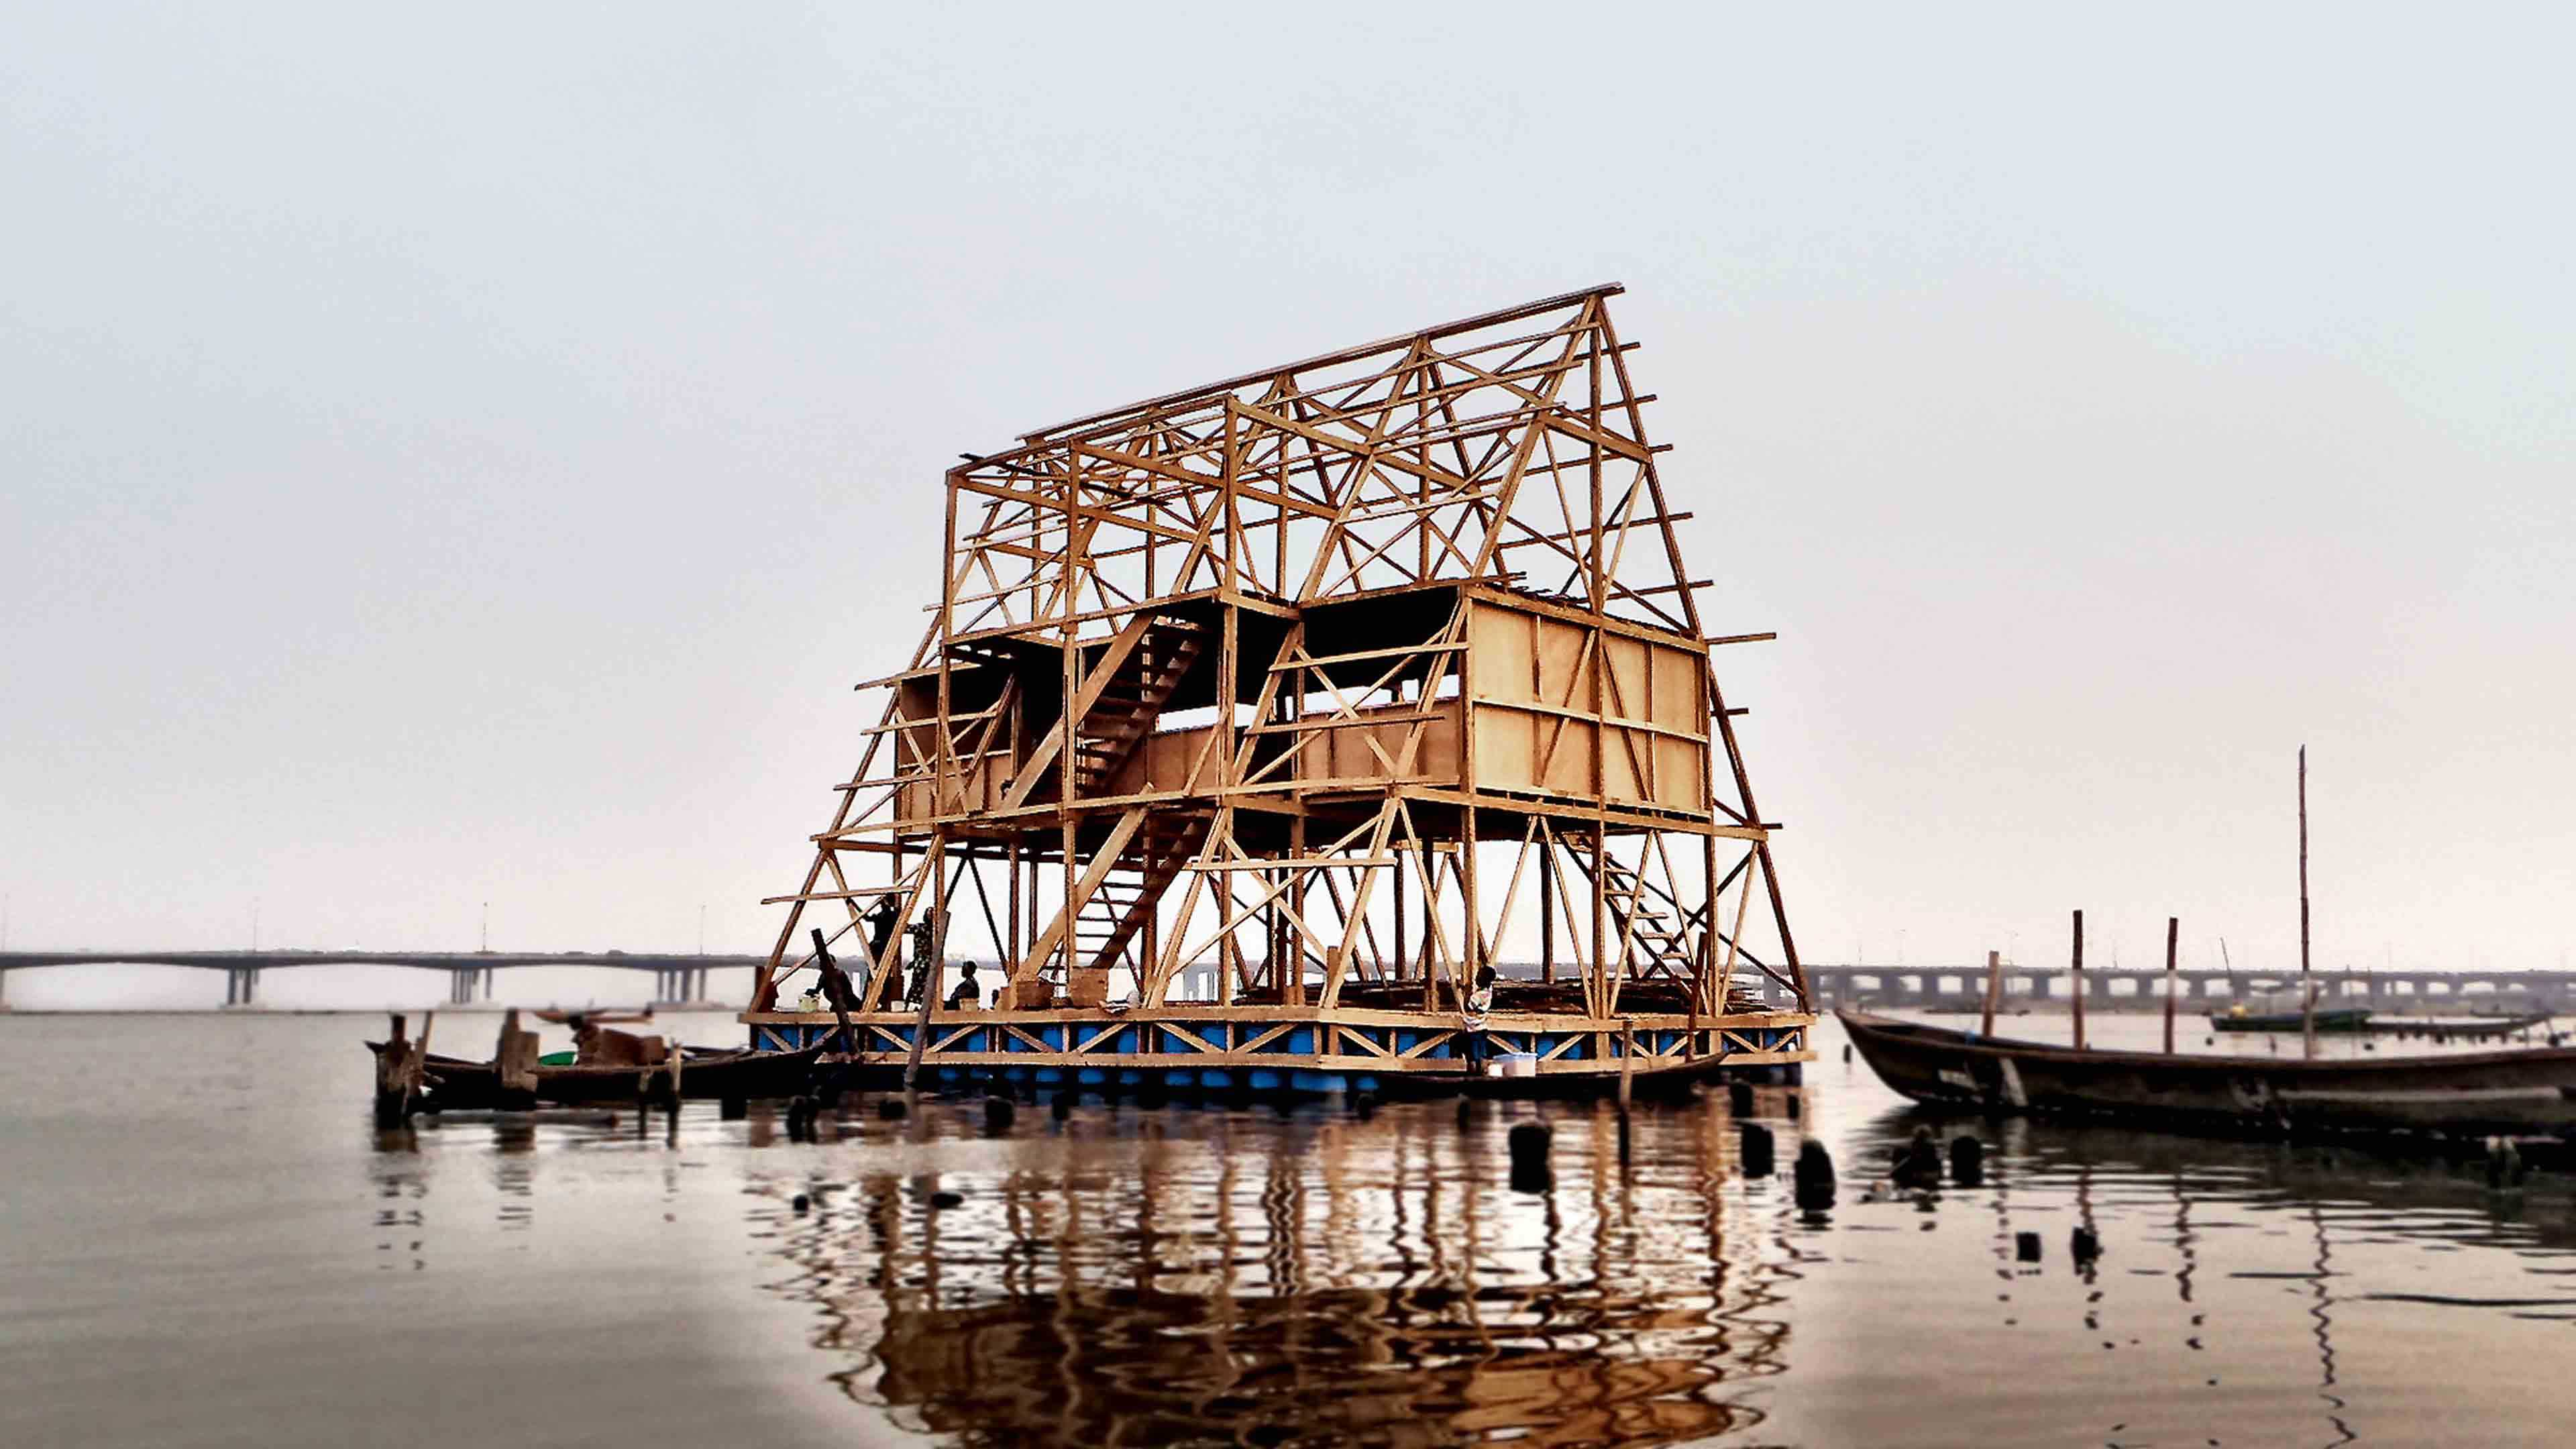 NLÉ, Floating School in Nigeria  - NLE 7 42